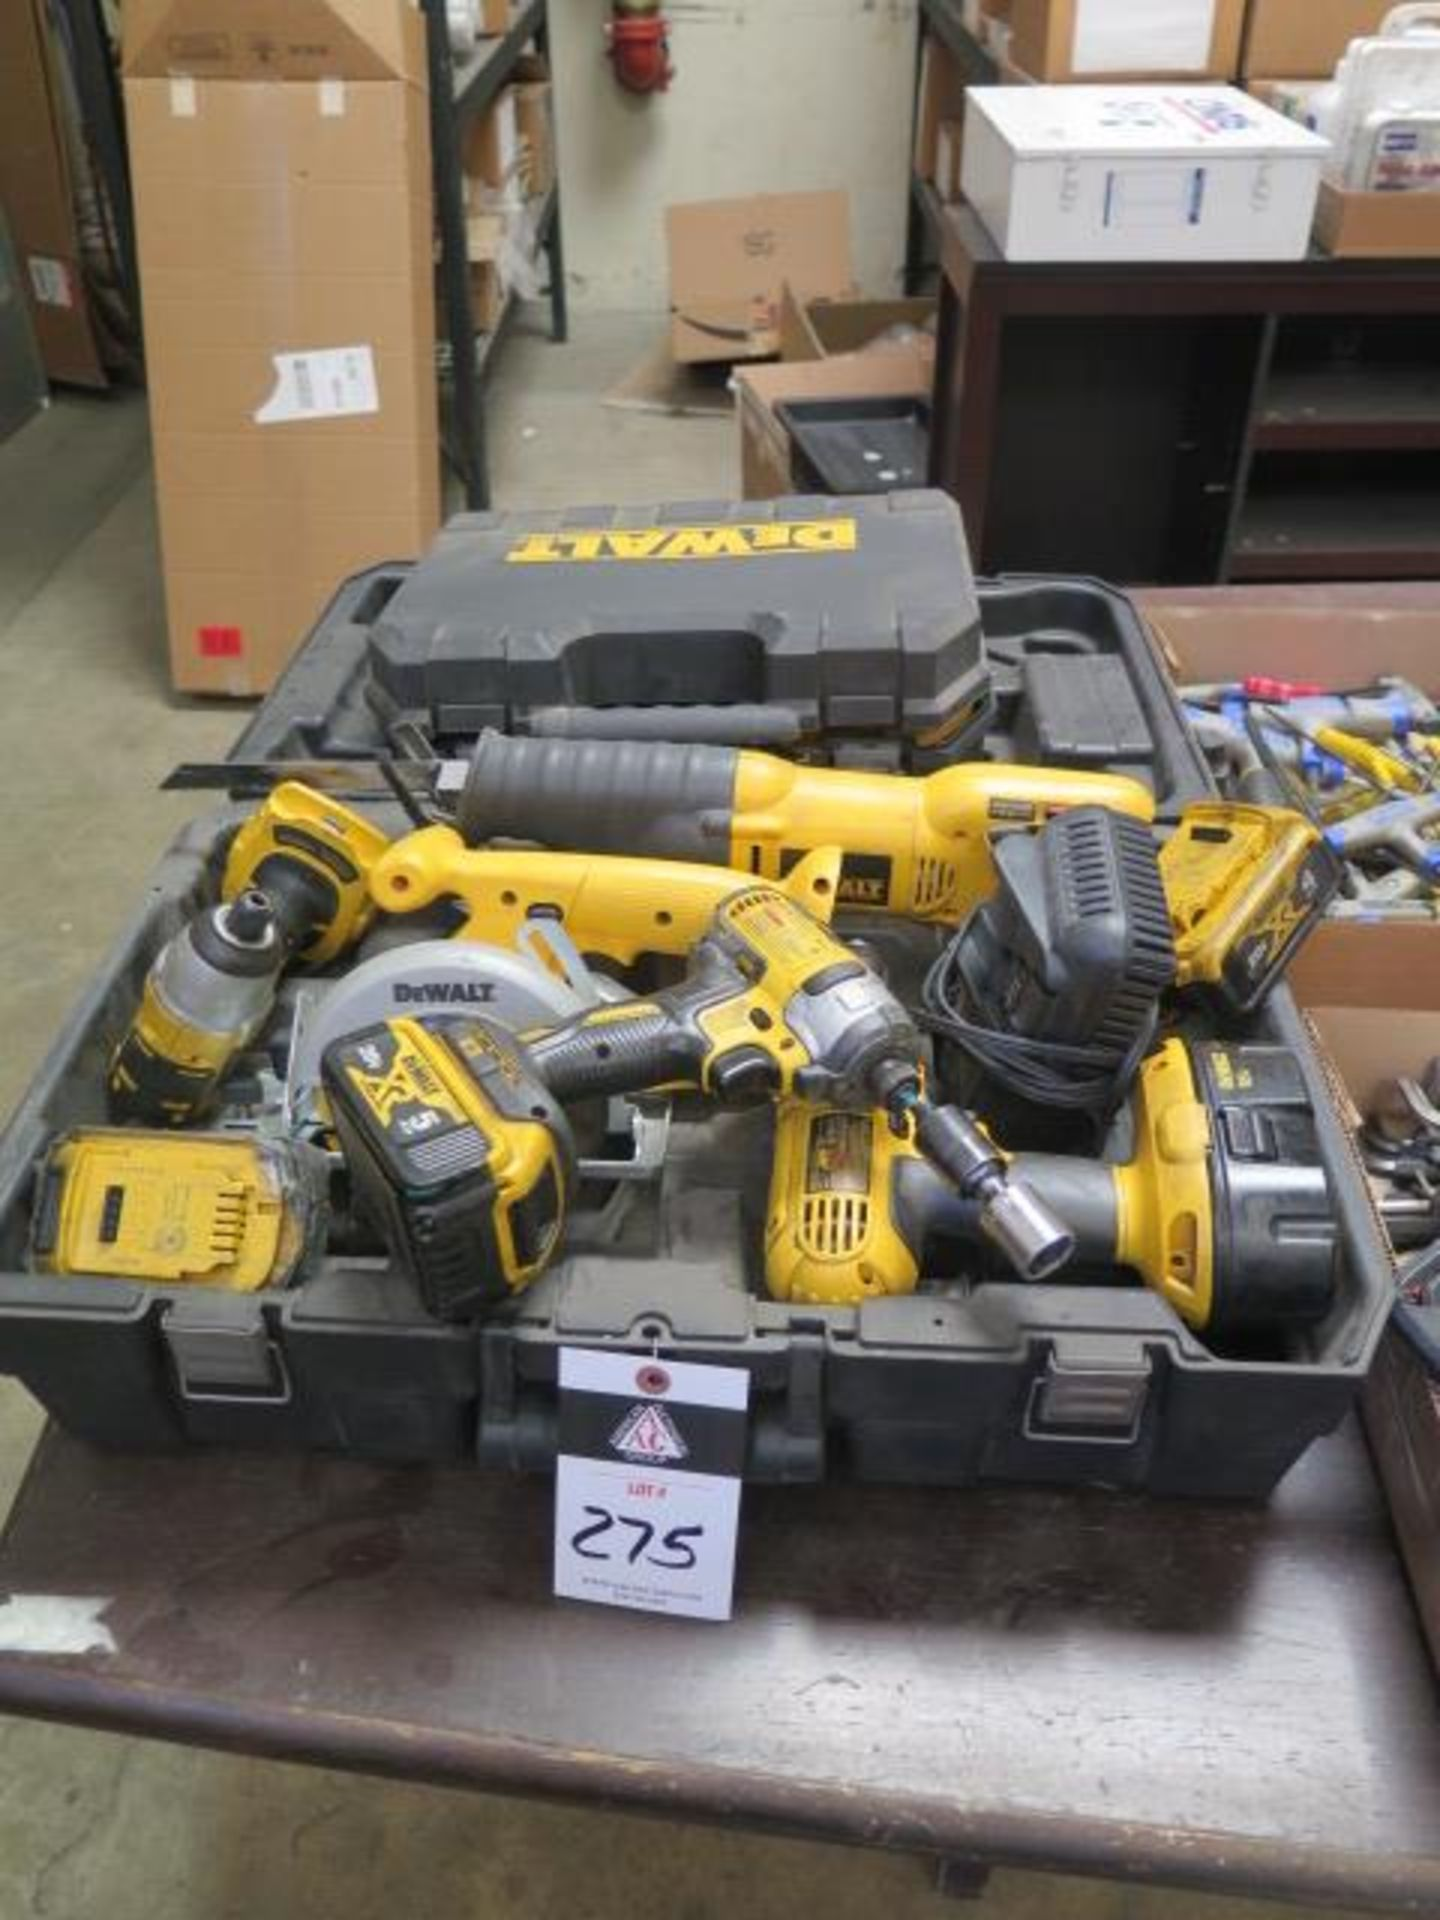 DeWalt Cordless Tools w/ Charger (SOLD AS-IS - NO WARRANTY)